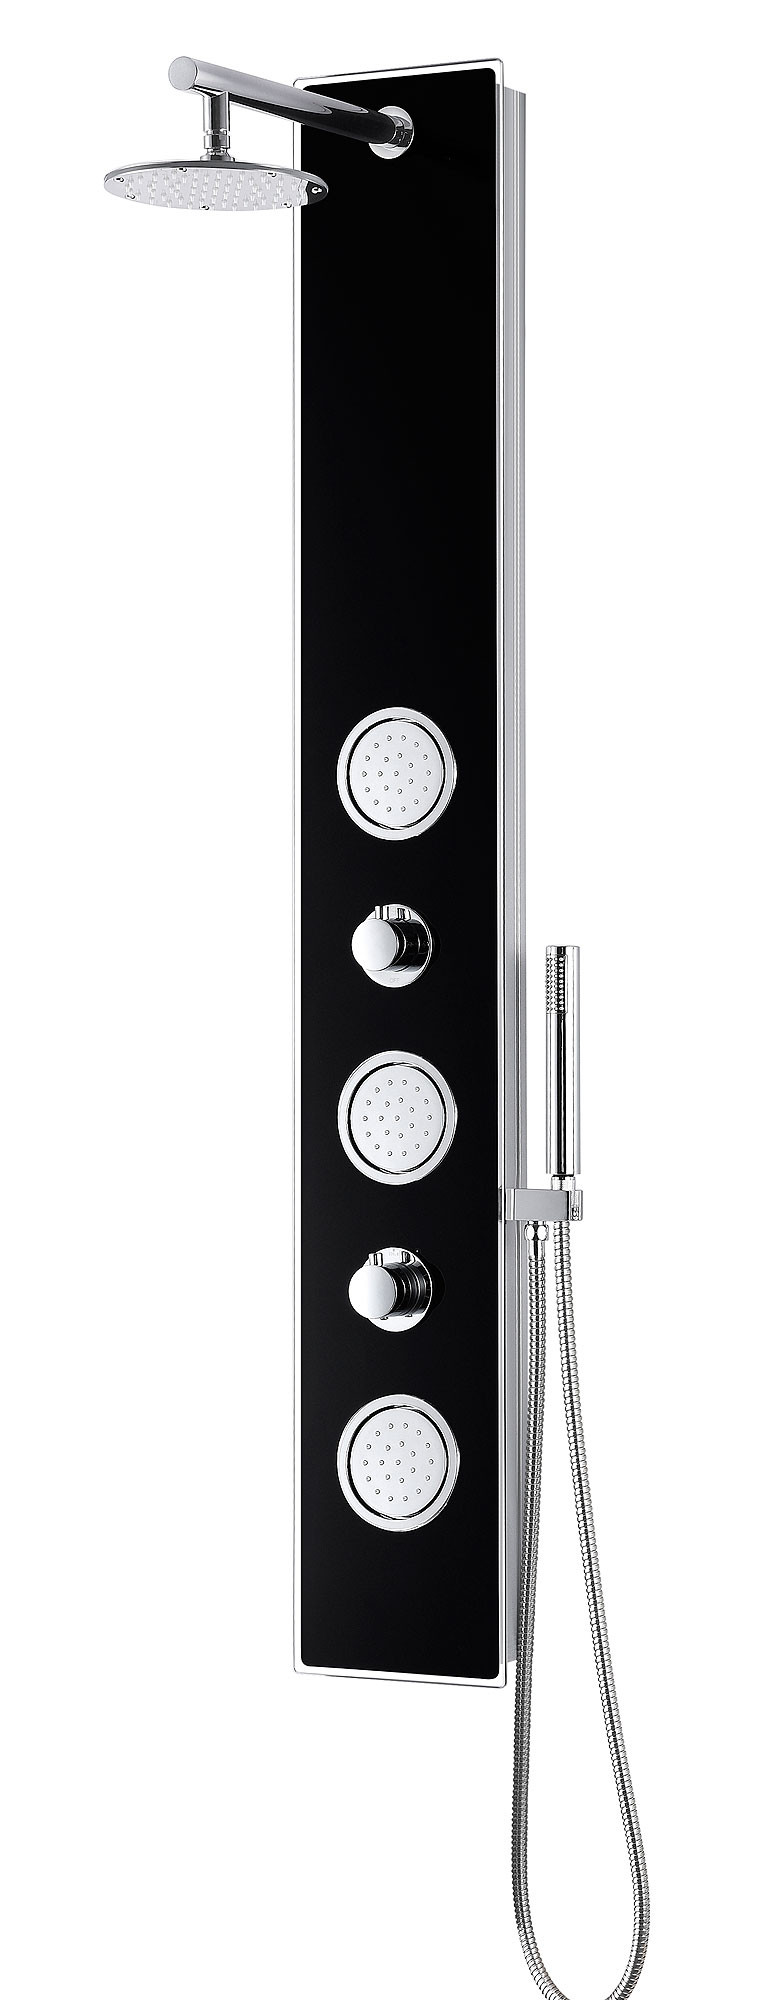 ANZZI SP-AZ045 Llano Shower Panel With Rain Shower and Spray Wand In Black